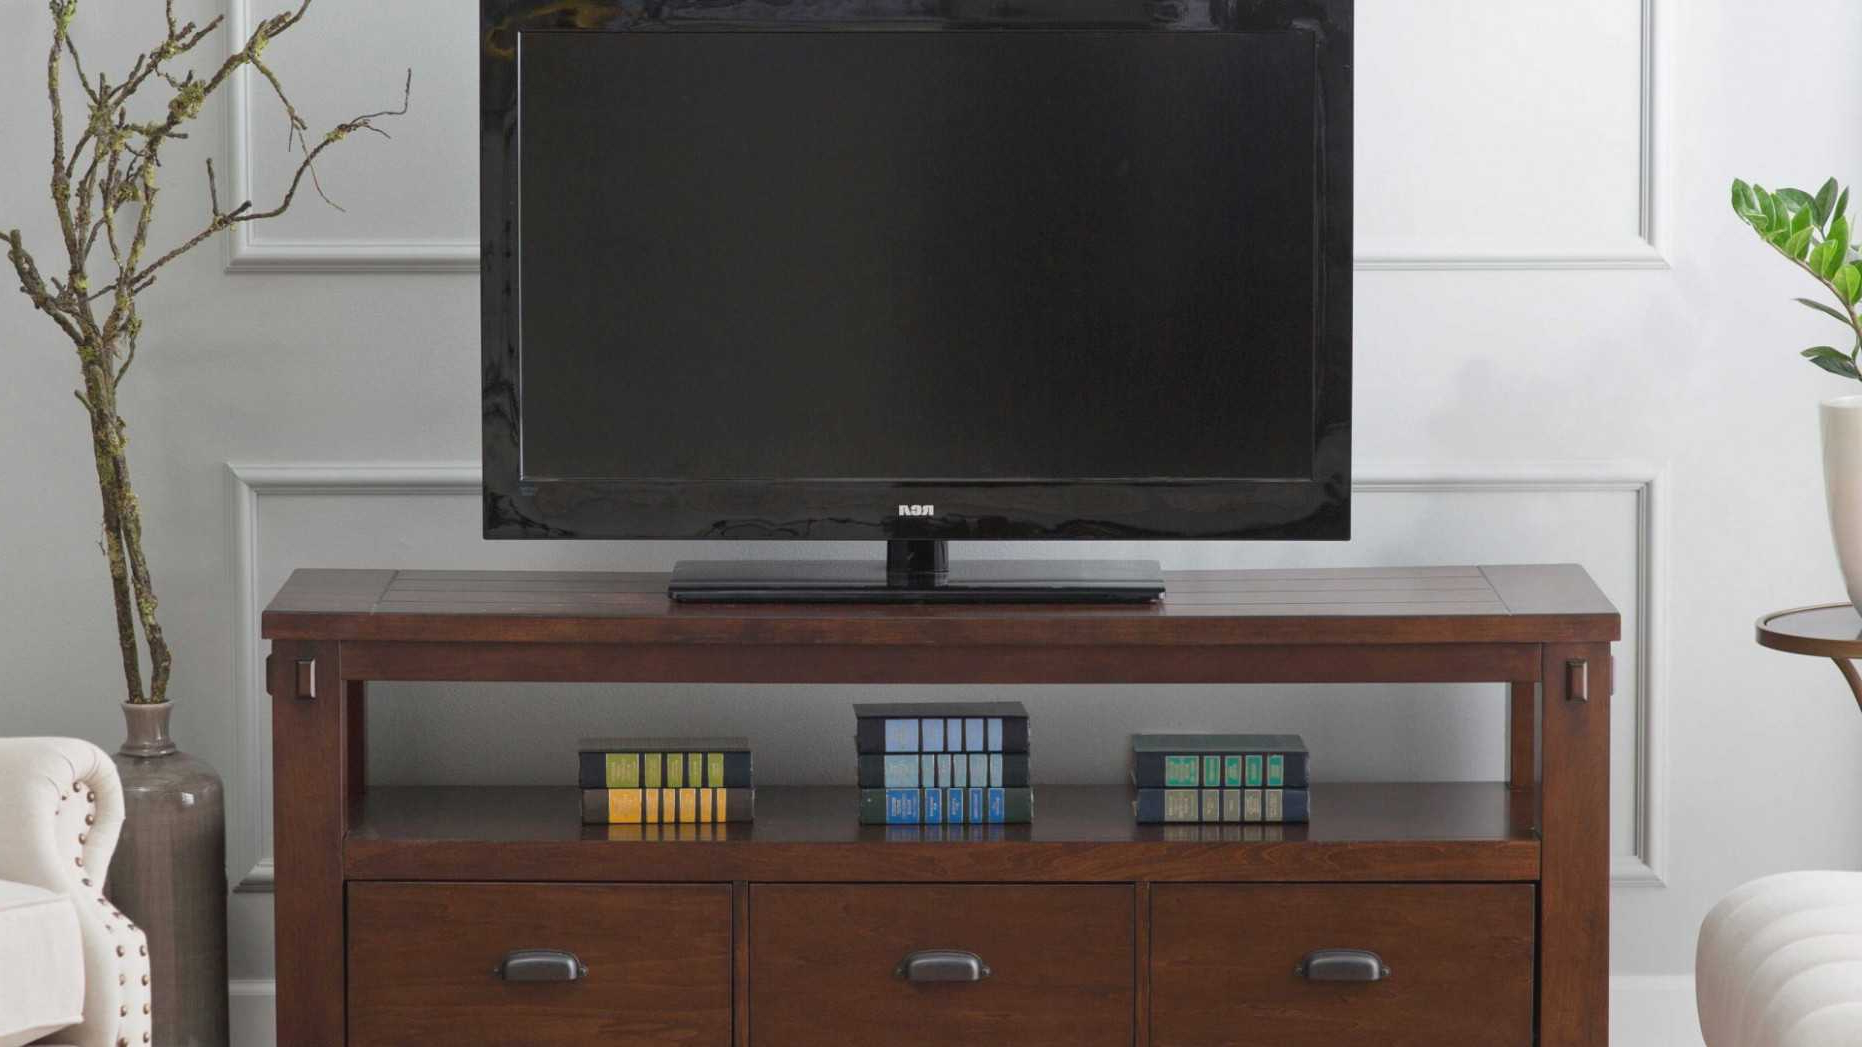 Most Recent Tall Skinny Tv Stands With Regard To Fascinating Small Tv Stands For Bedroom Ideas And Clear Glass Tire (View 20 of 20)